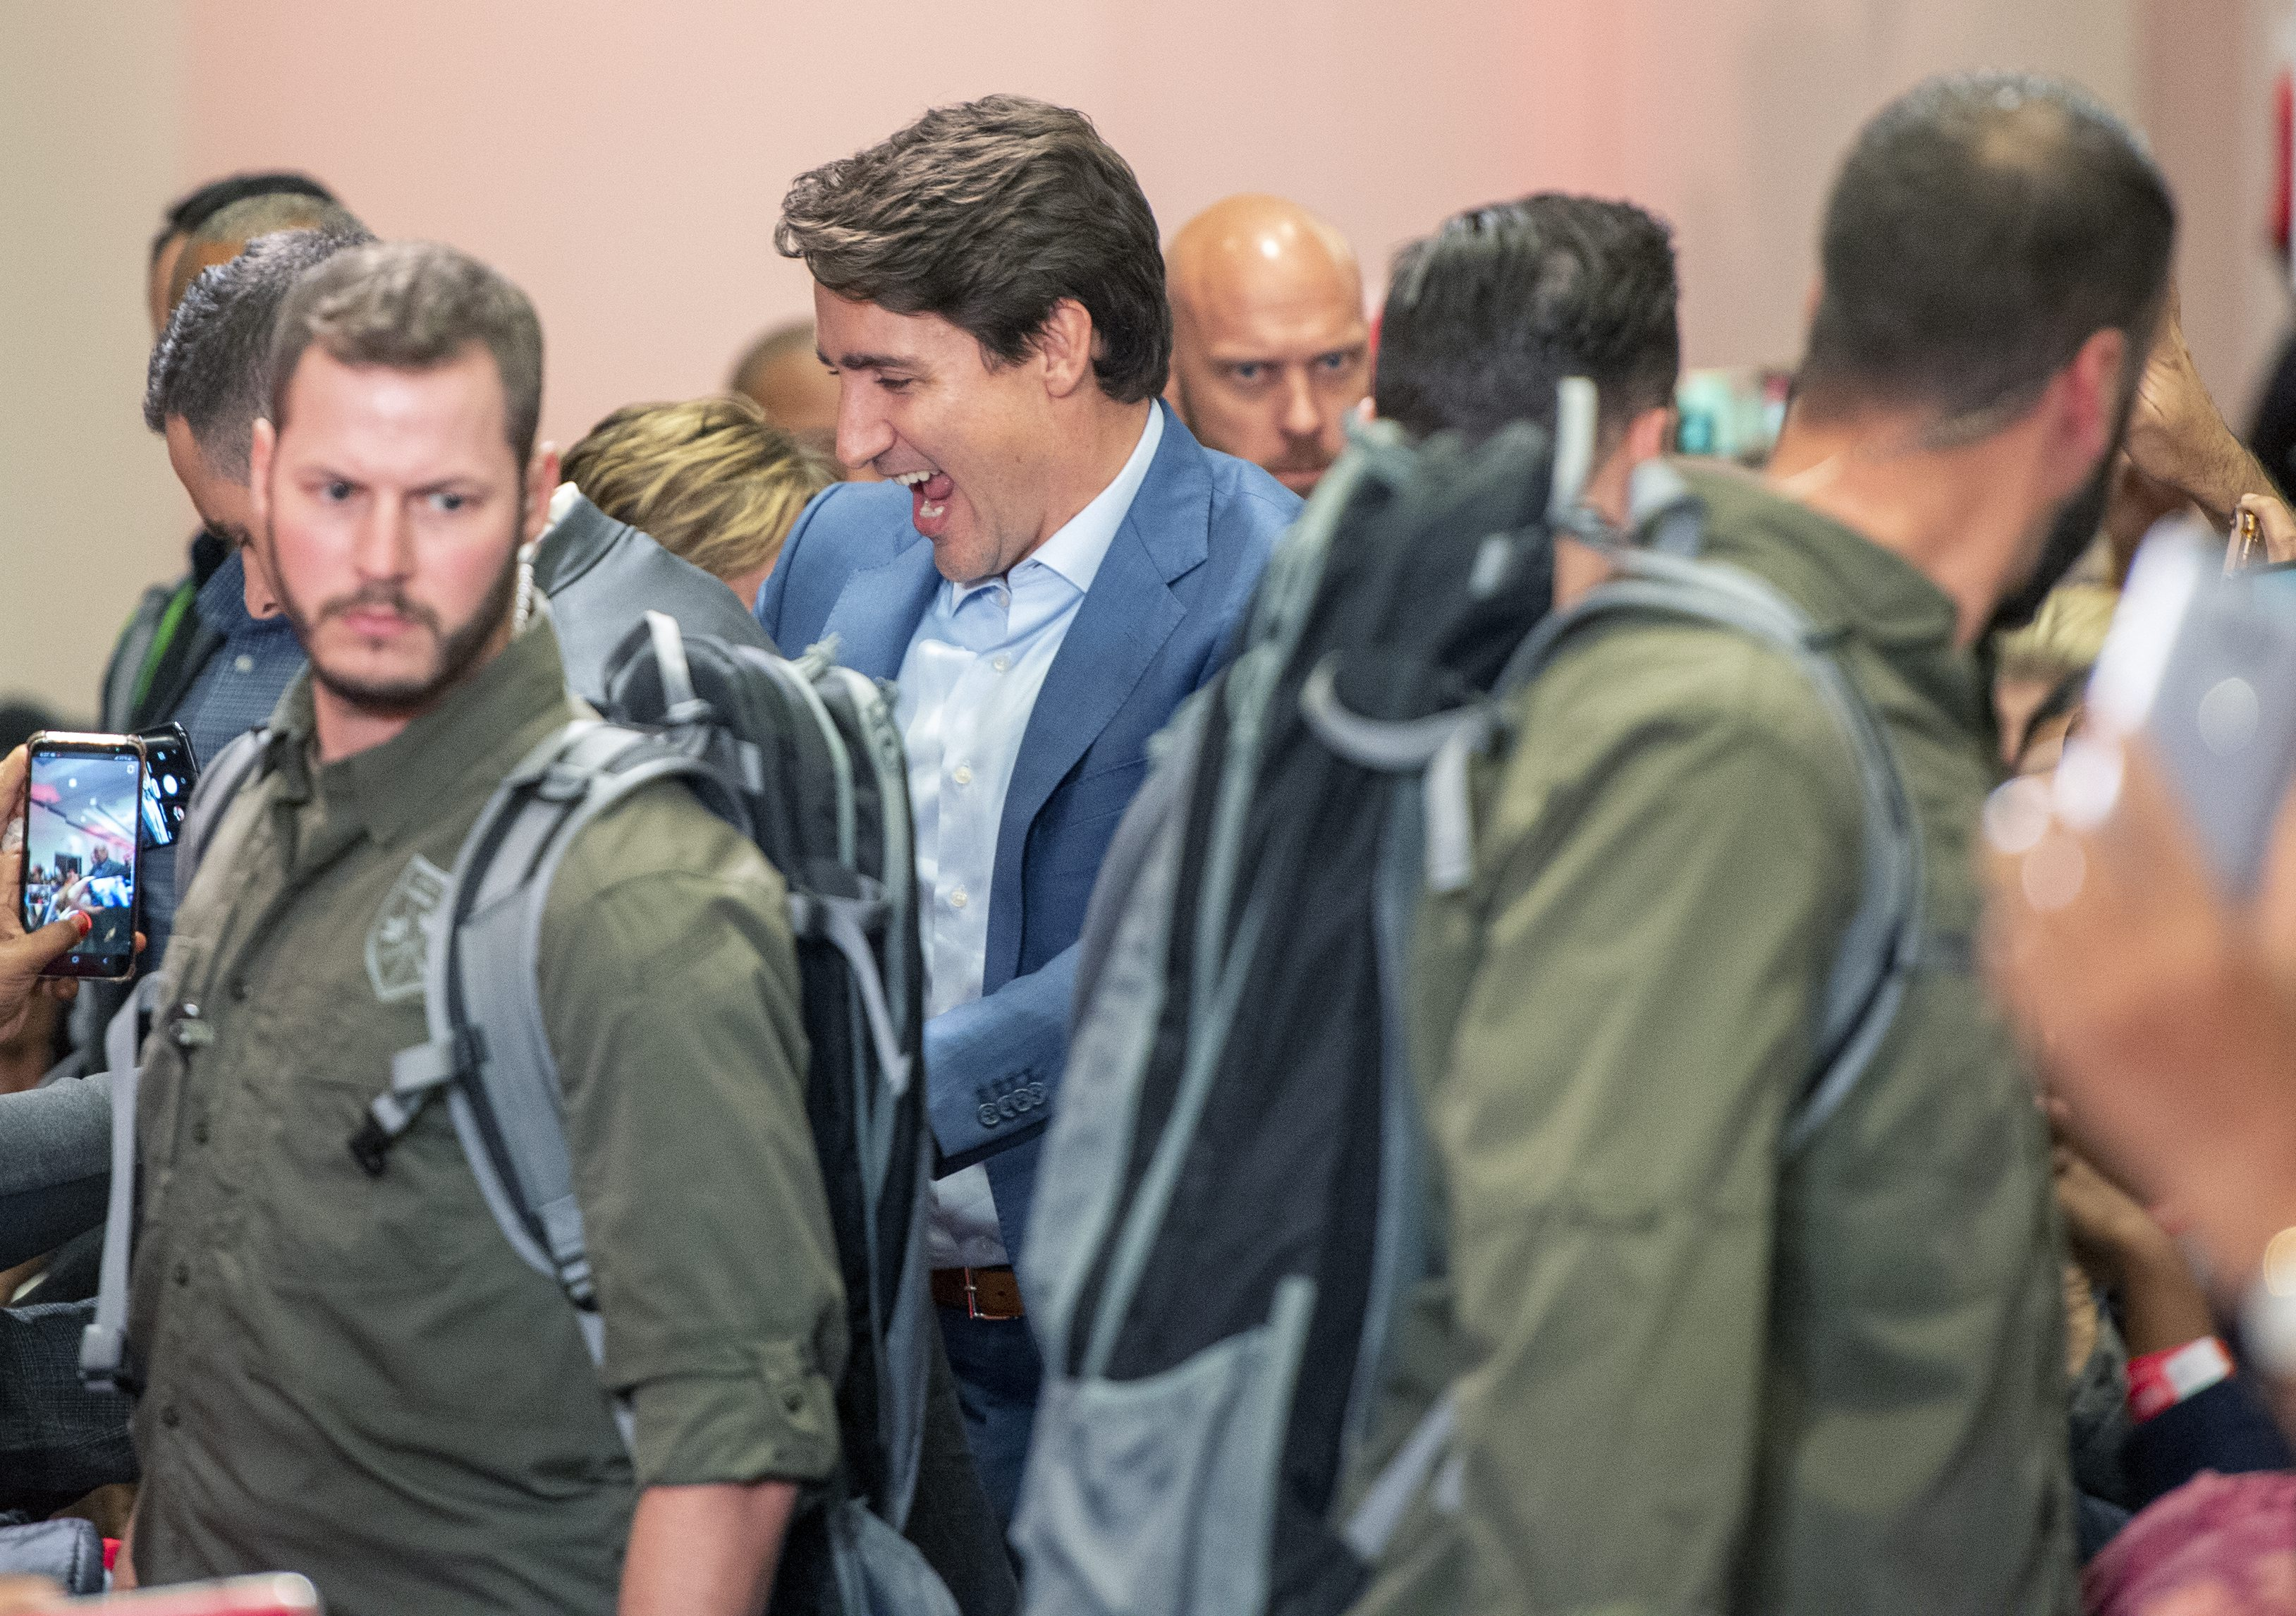 Trudeau appeared at rally in bulletproof vest amid security concern